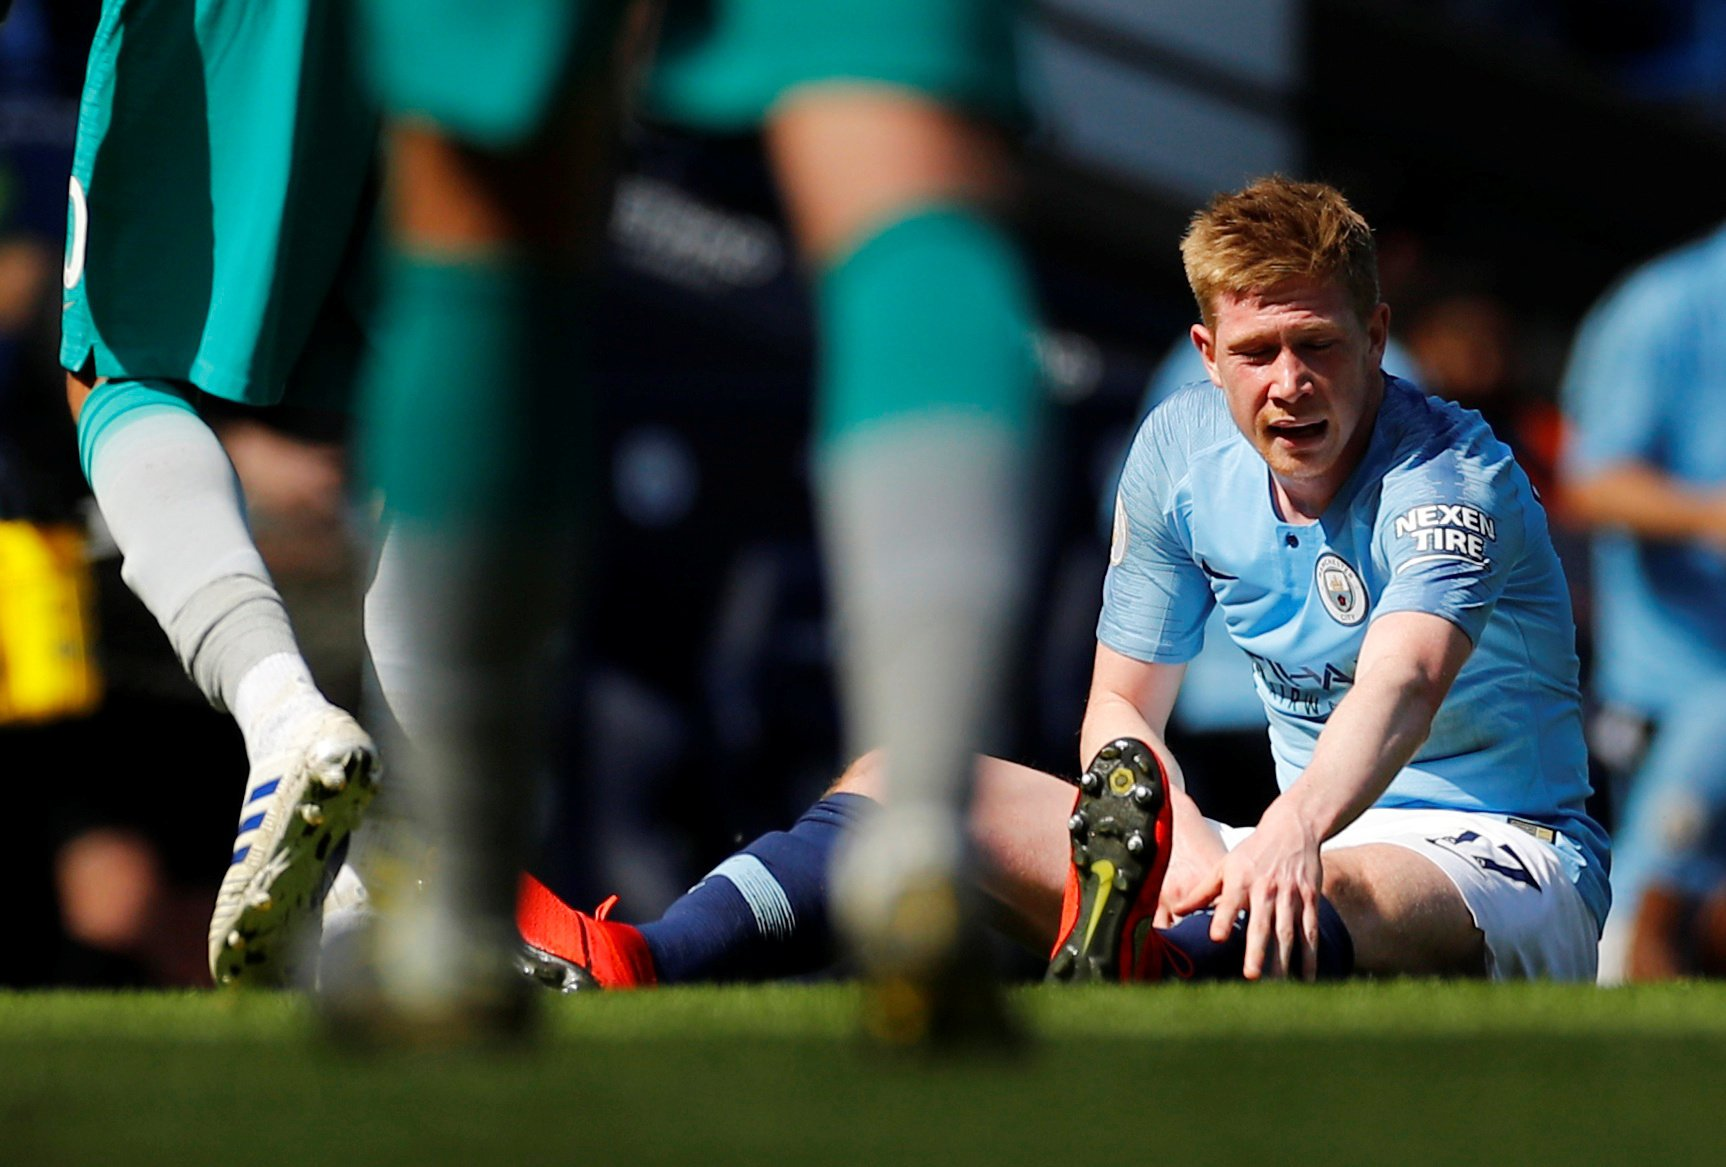 """Soccer Football - Premier League - Manchester City v Tottenham Hotspur - Etihad Stadium, Manchester, Britain - April 20, 2019 Manchester City's Kevin De Bruyne down injured REUTERS/Phil Noble EDITORIAL USE ONLY. No use with unauthorized audio, video, data, fixture lists, club/league logos or """"live"""" services. Online in-match use limited to 75 images, no video emulation. No use in betting, games or single club/league/player publications. Please contact your account representative for further details."""